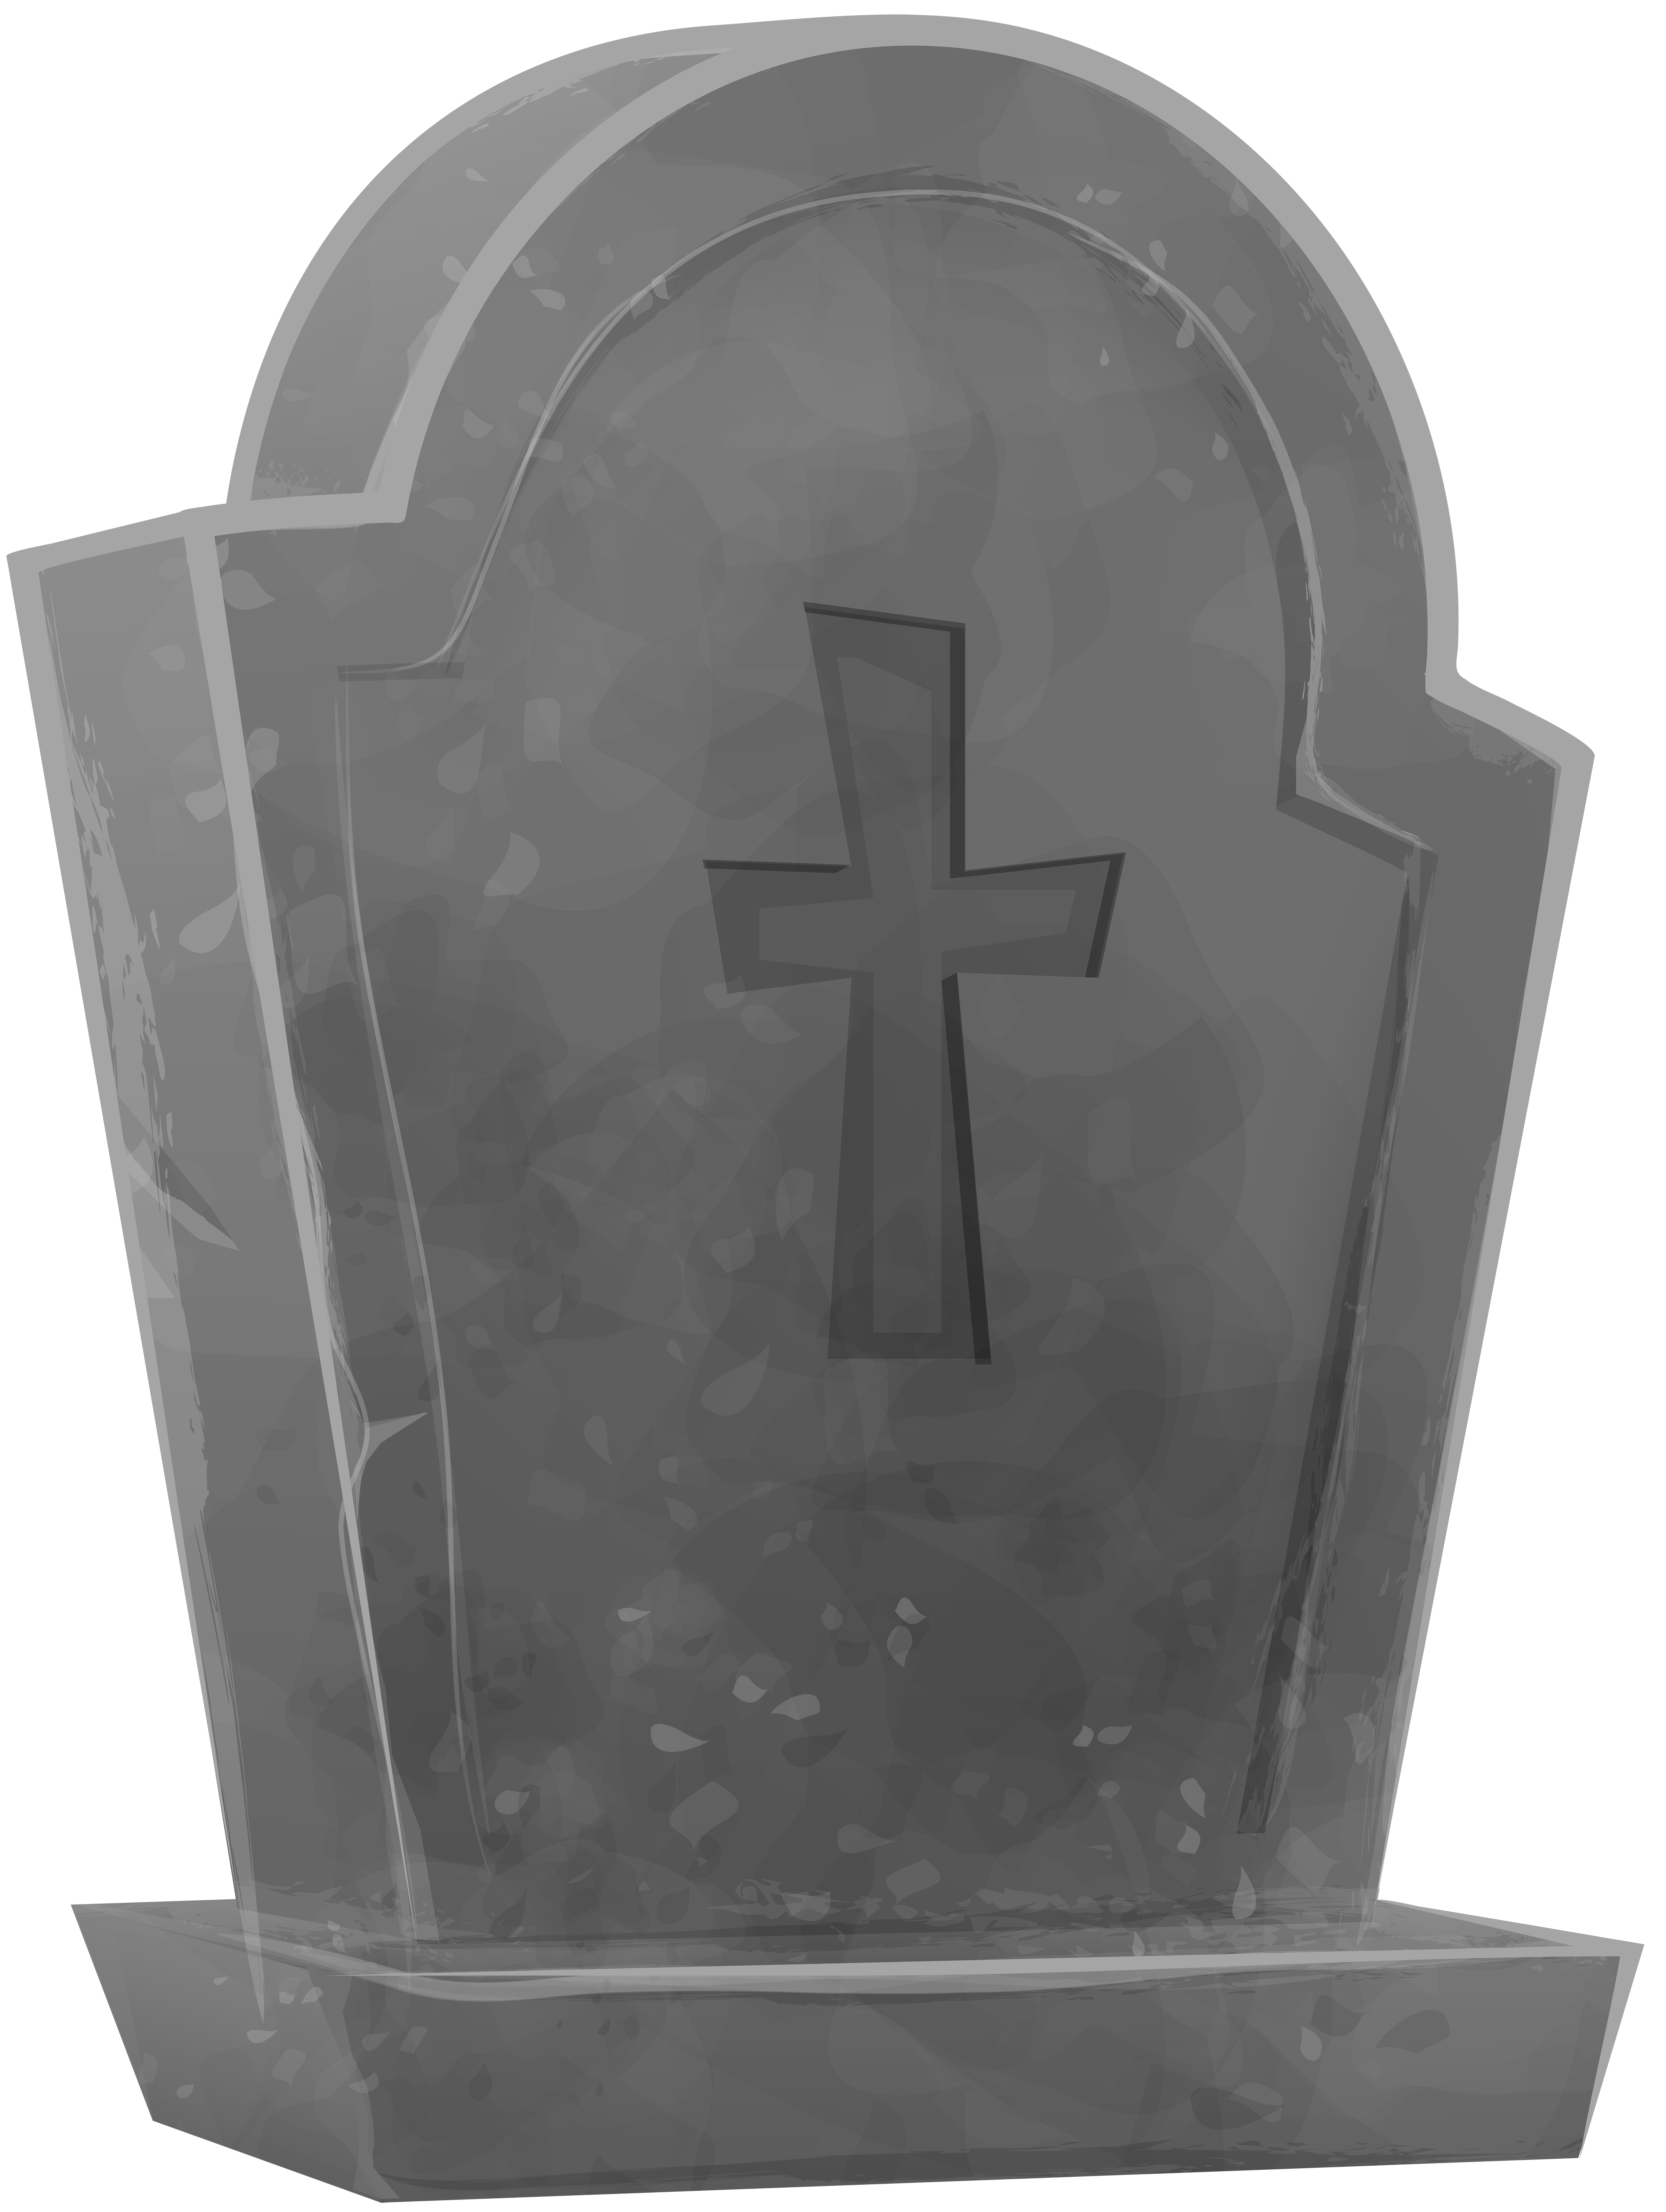 Clipart halloween grave. Rip tombstone png clip